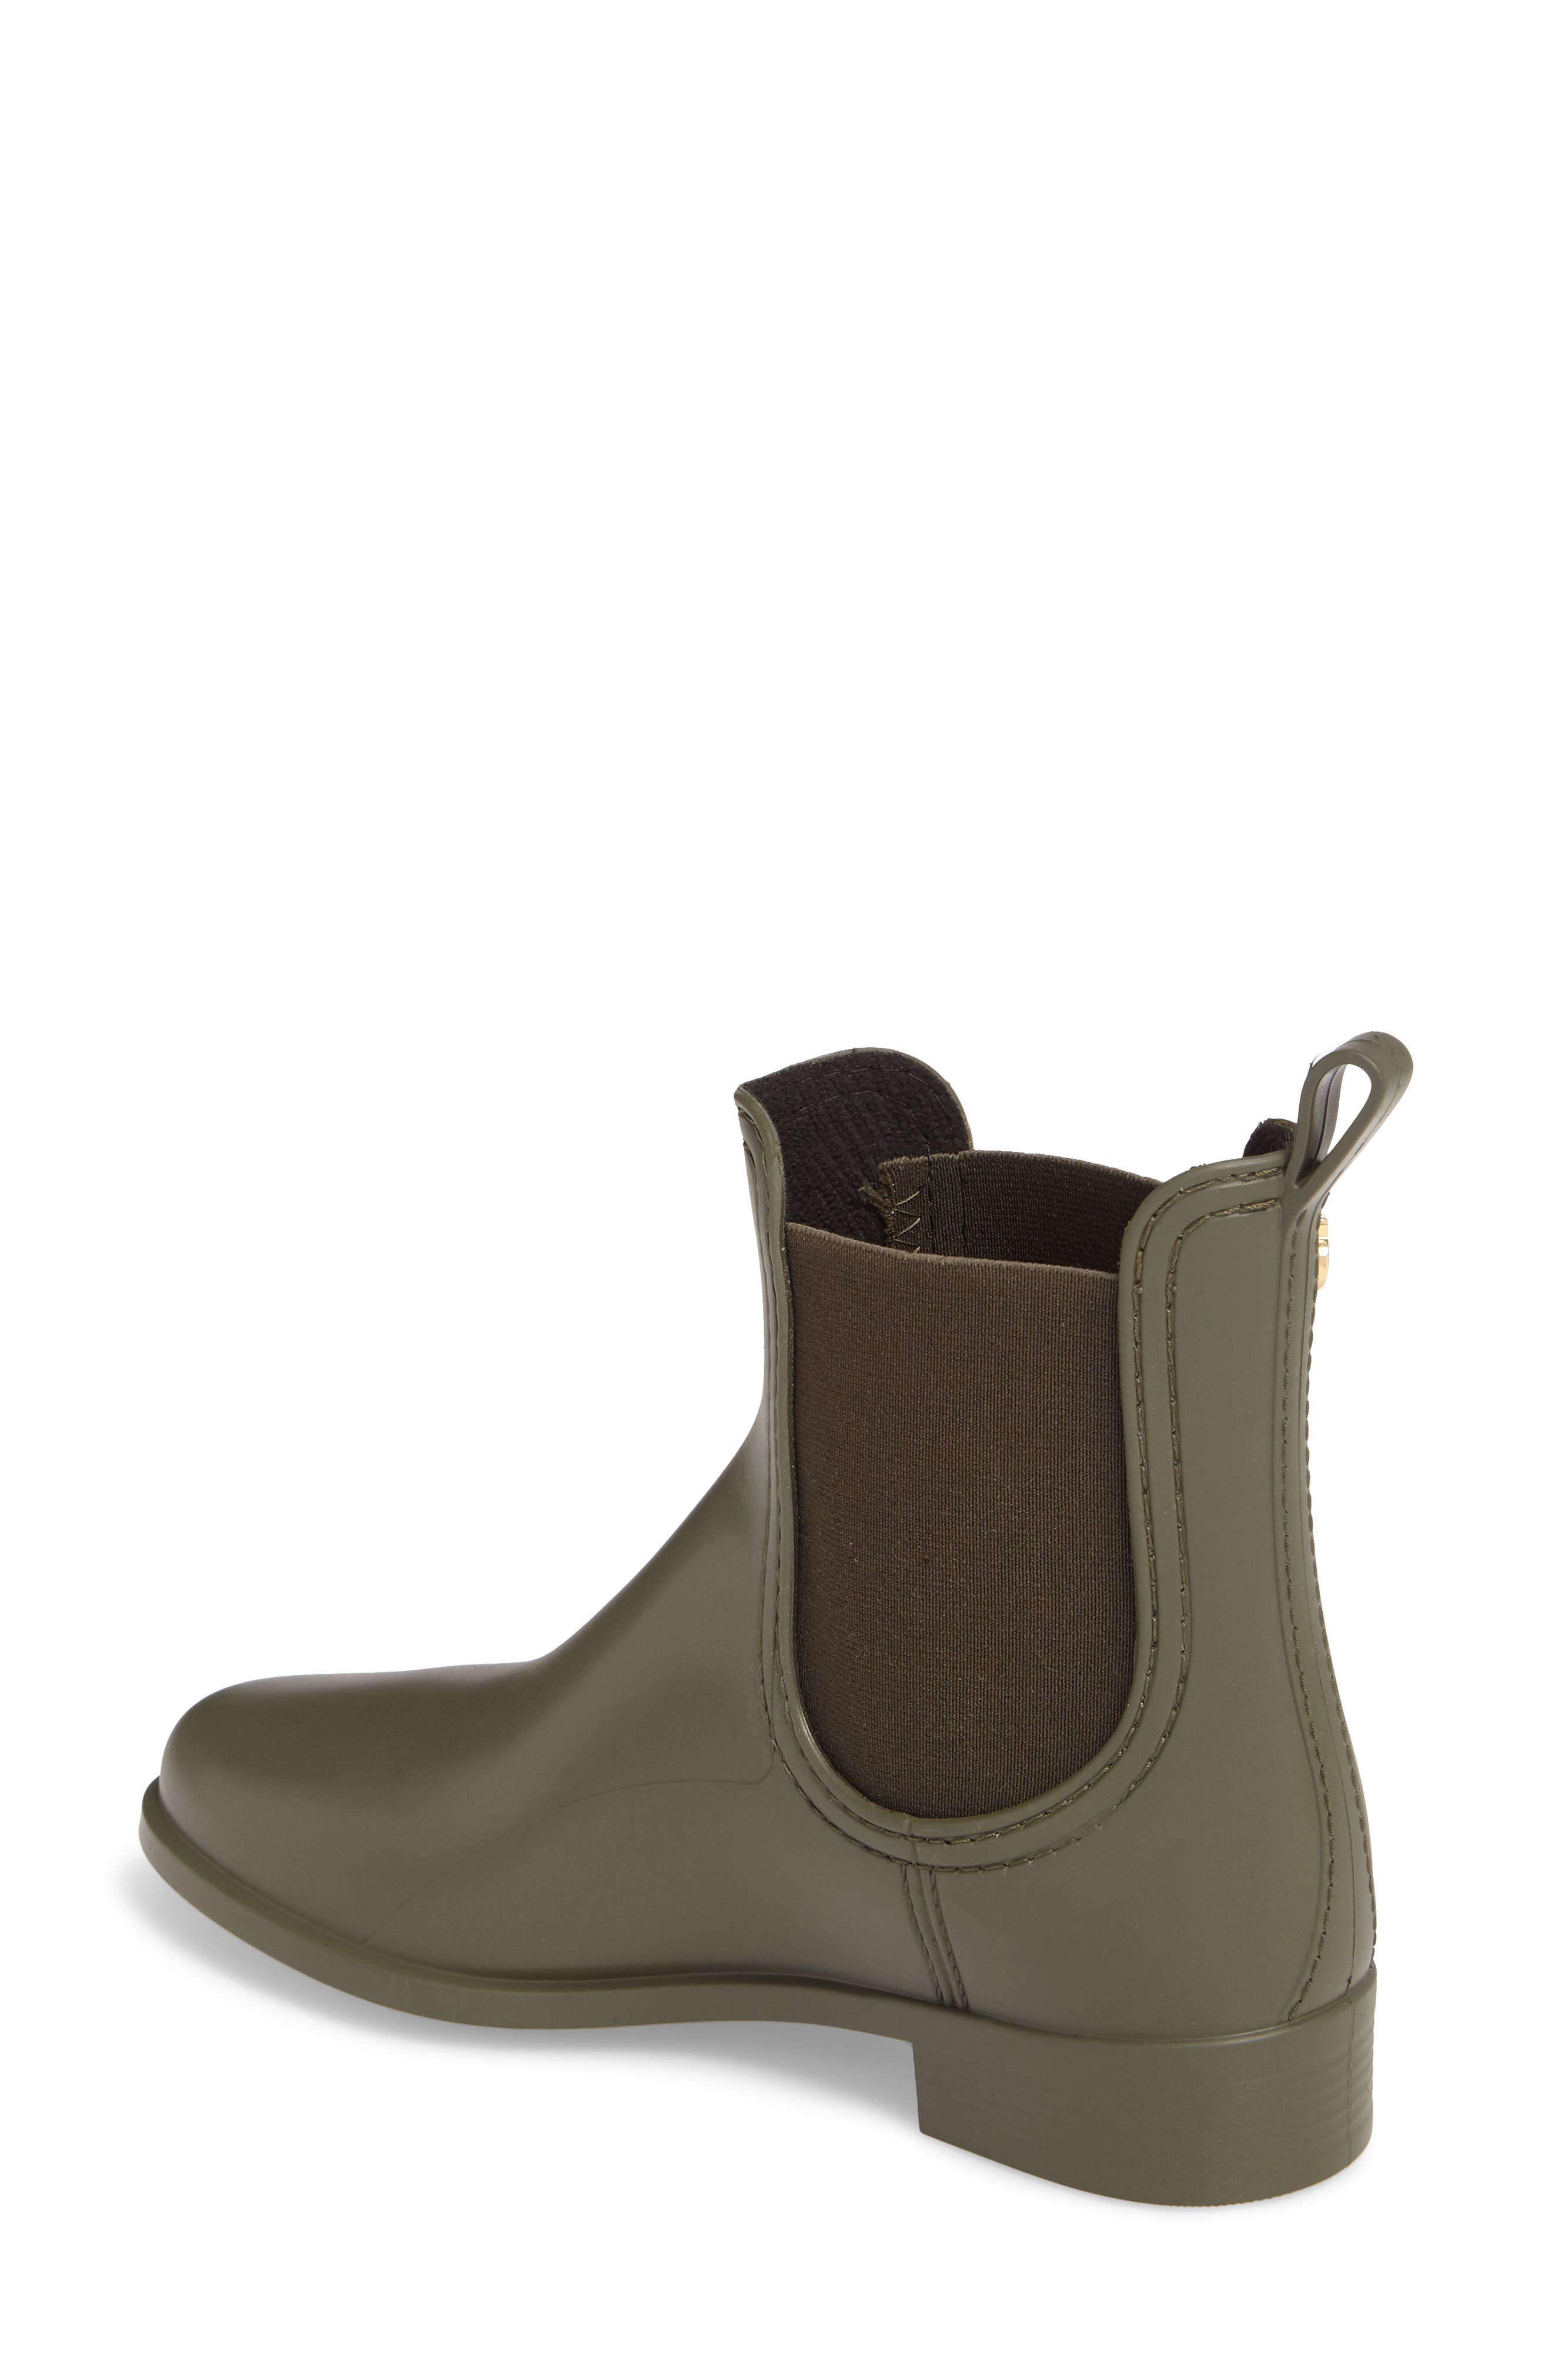 Splash Waterproof Chelsea Boot,                             Alternate thumbnail 2, color,                             Metal Green Matte